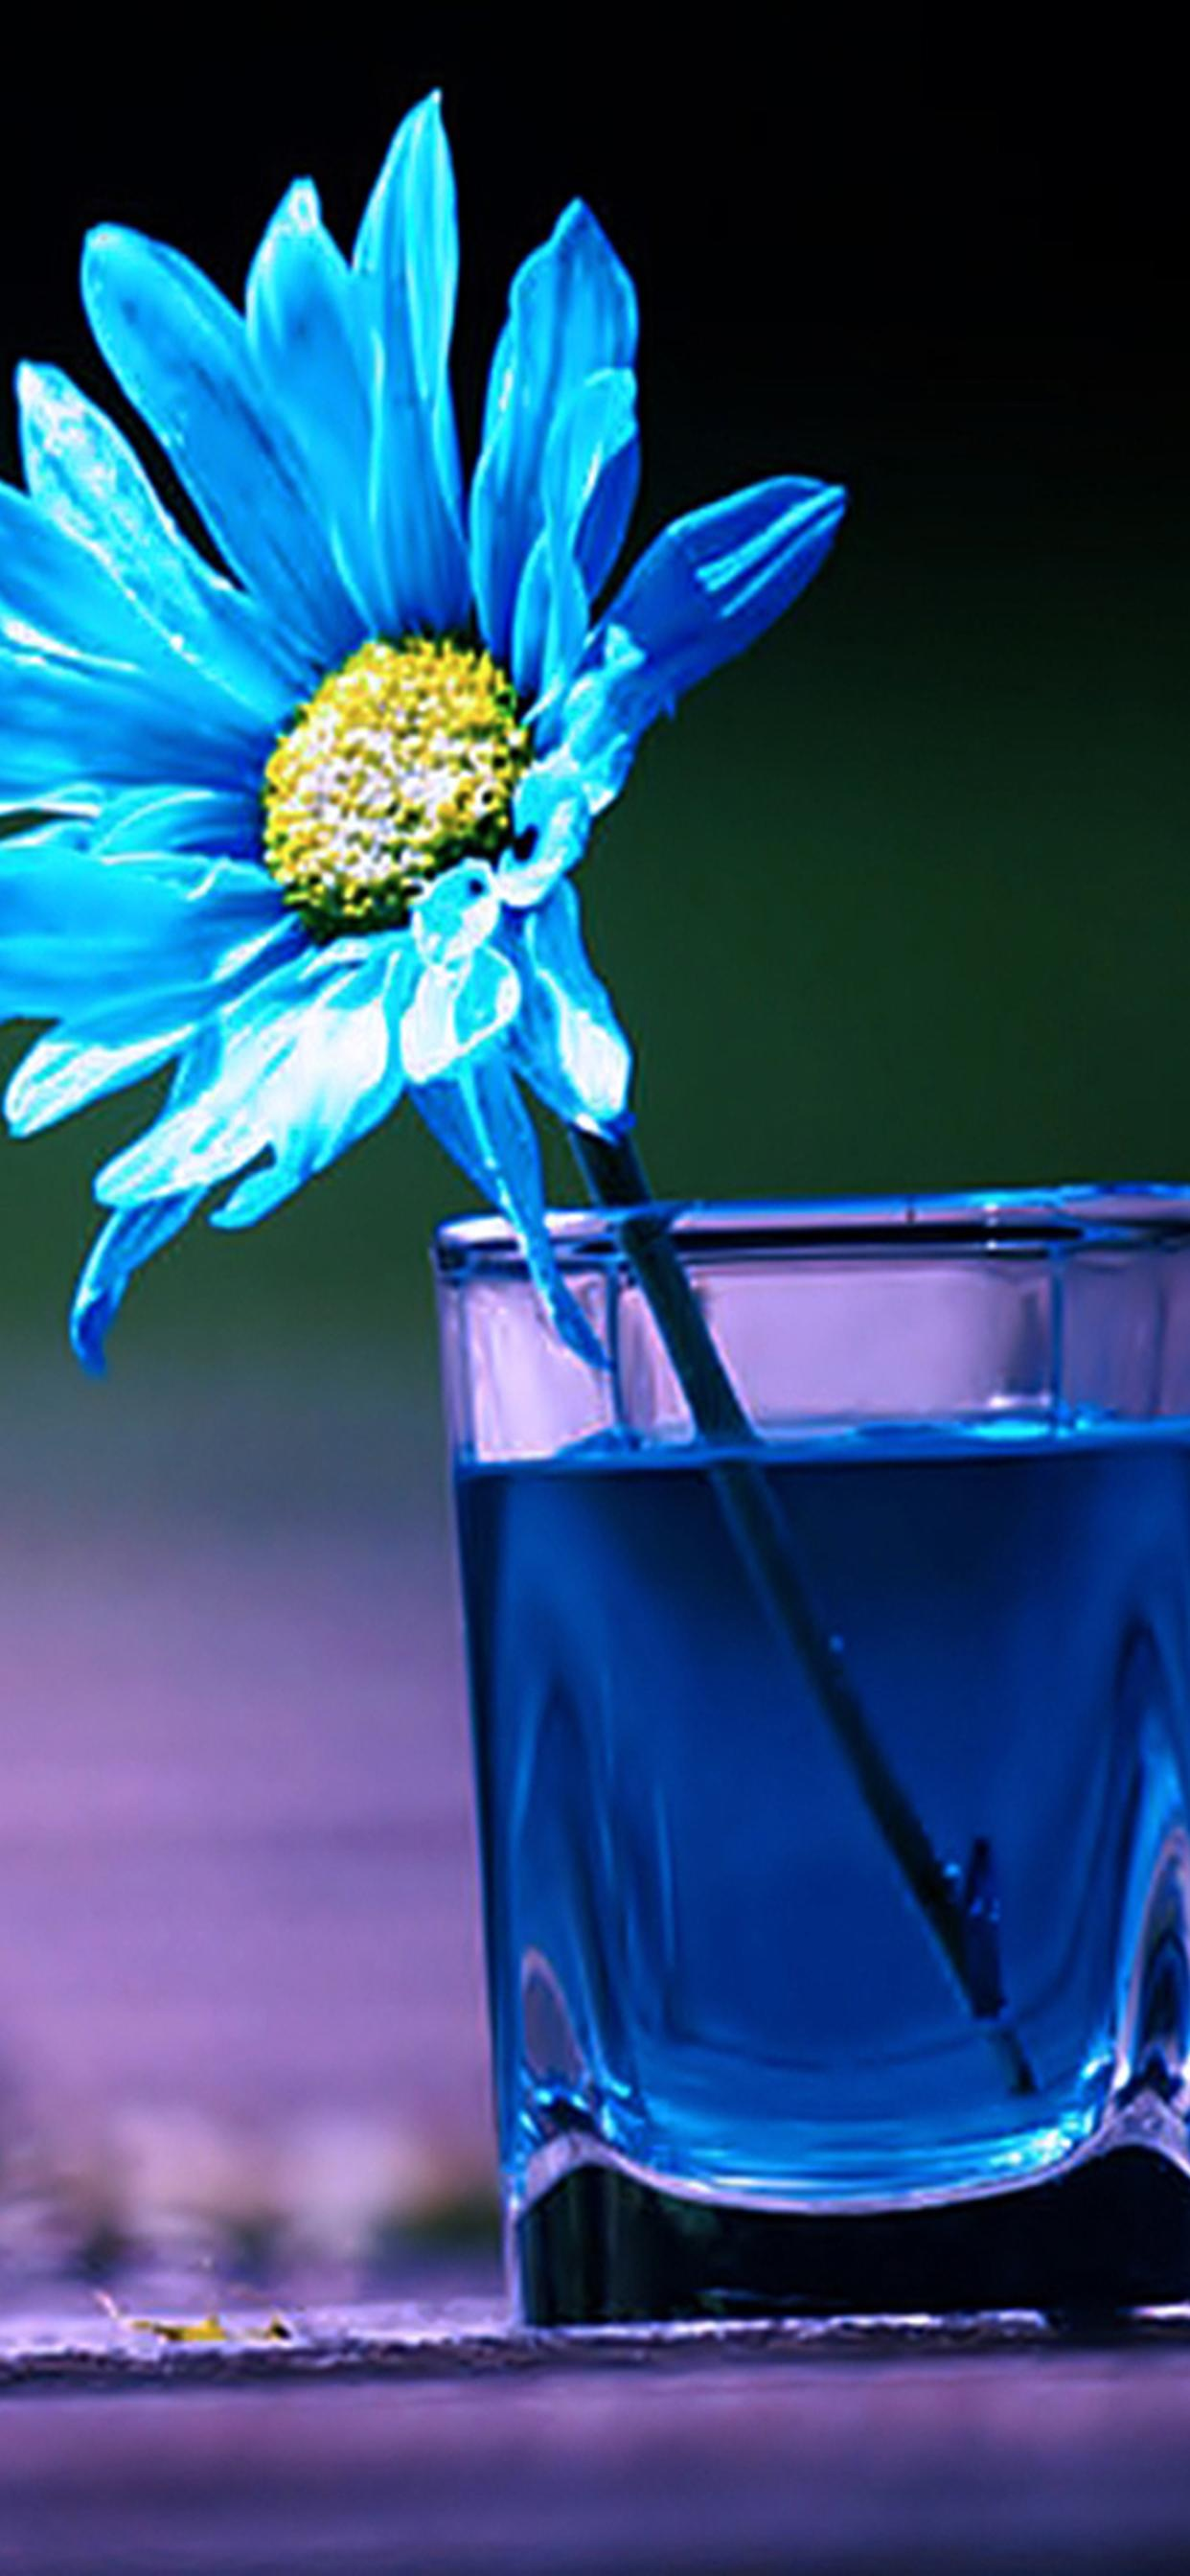 Blue Flower In A Glass With Blue Water Abstract 3d Wallpaper